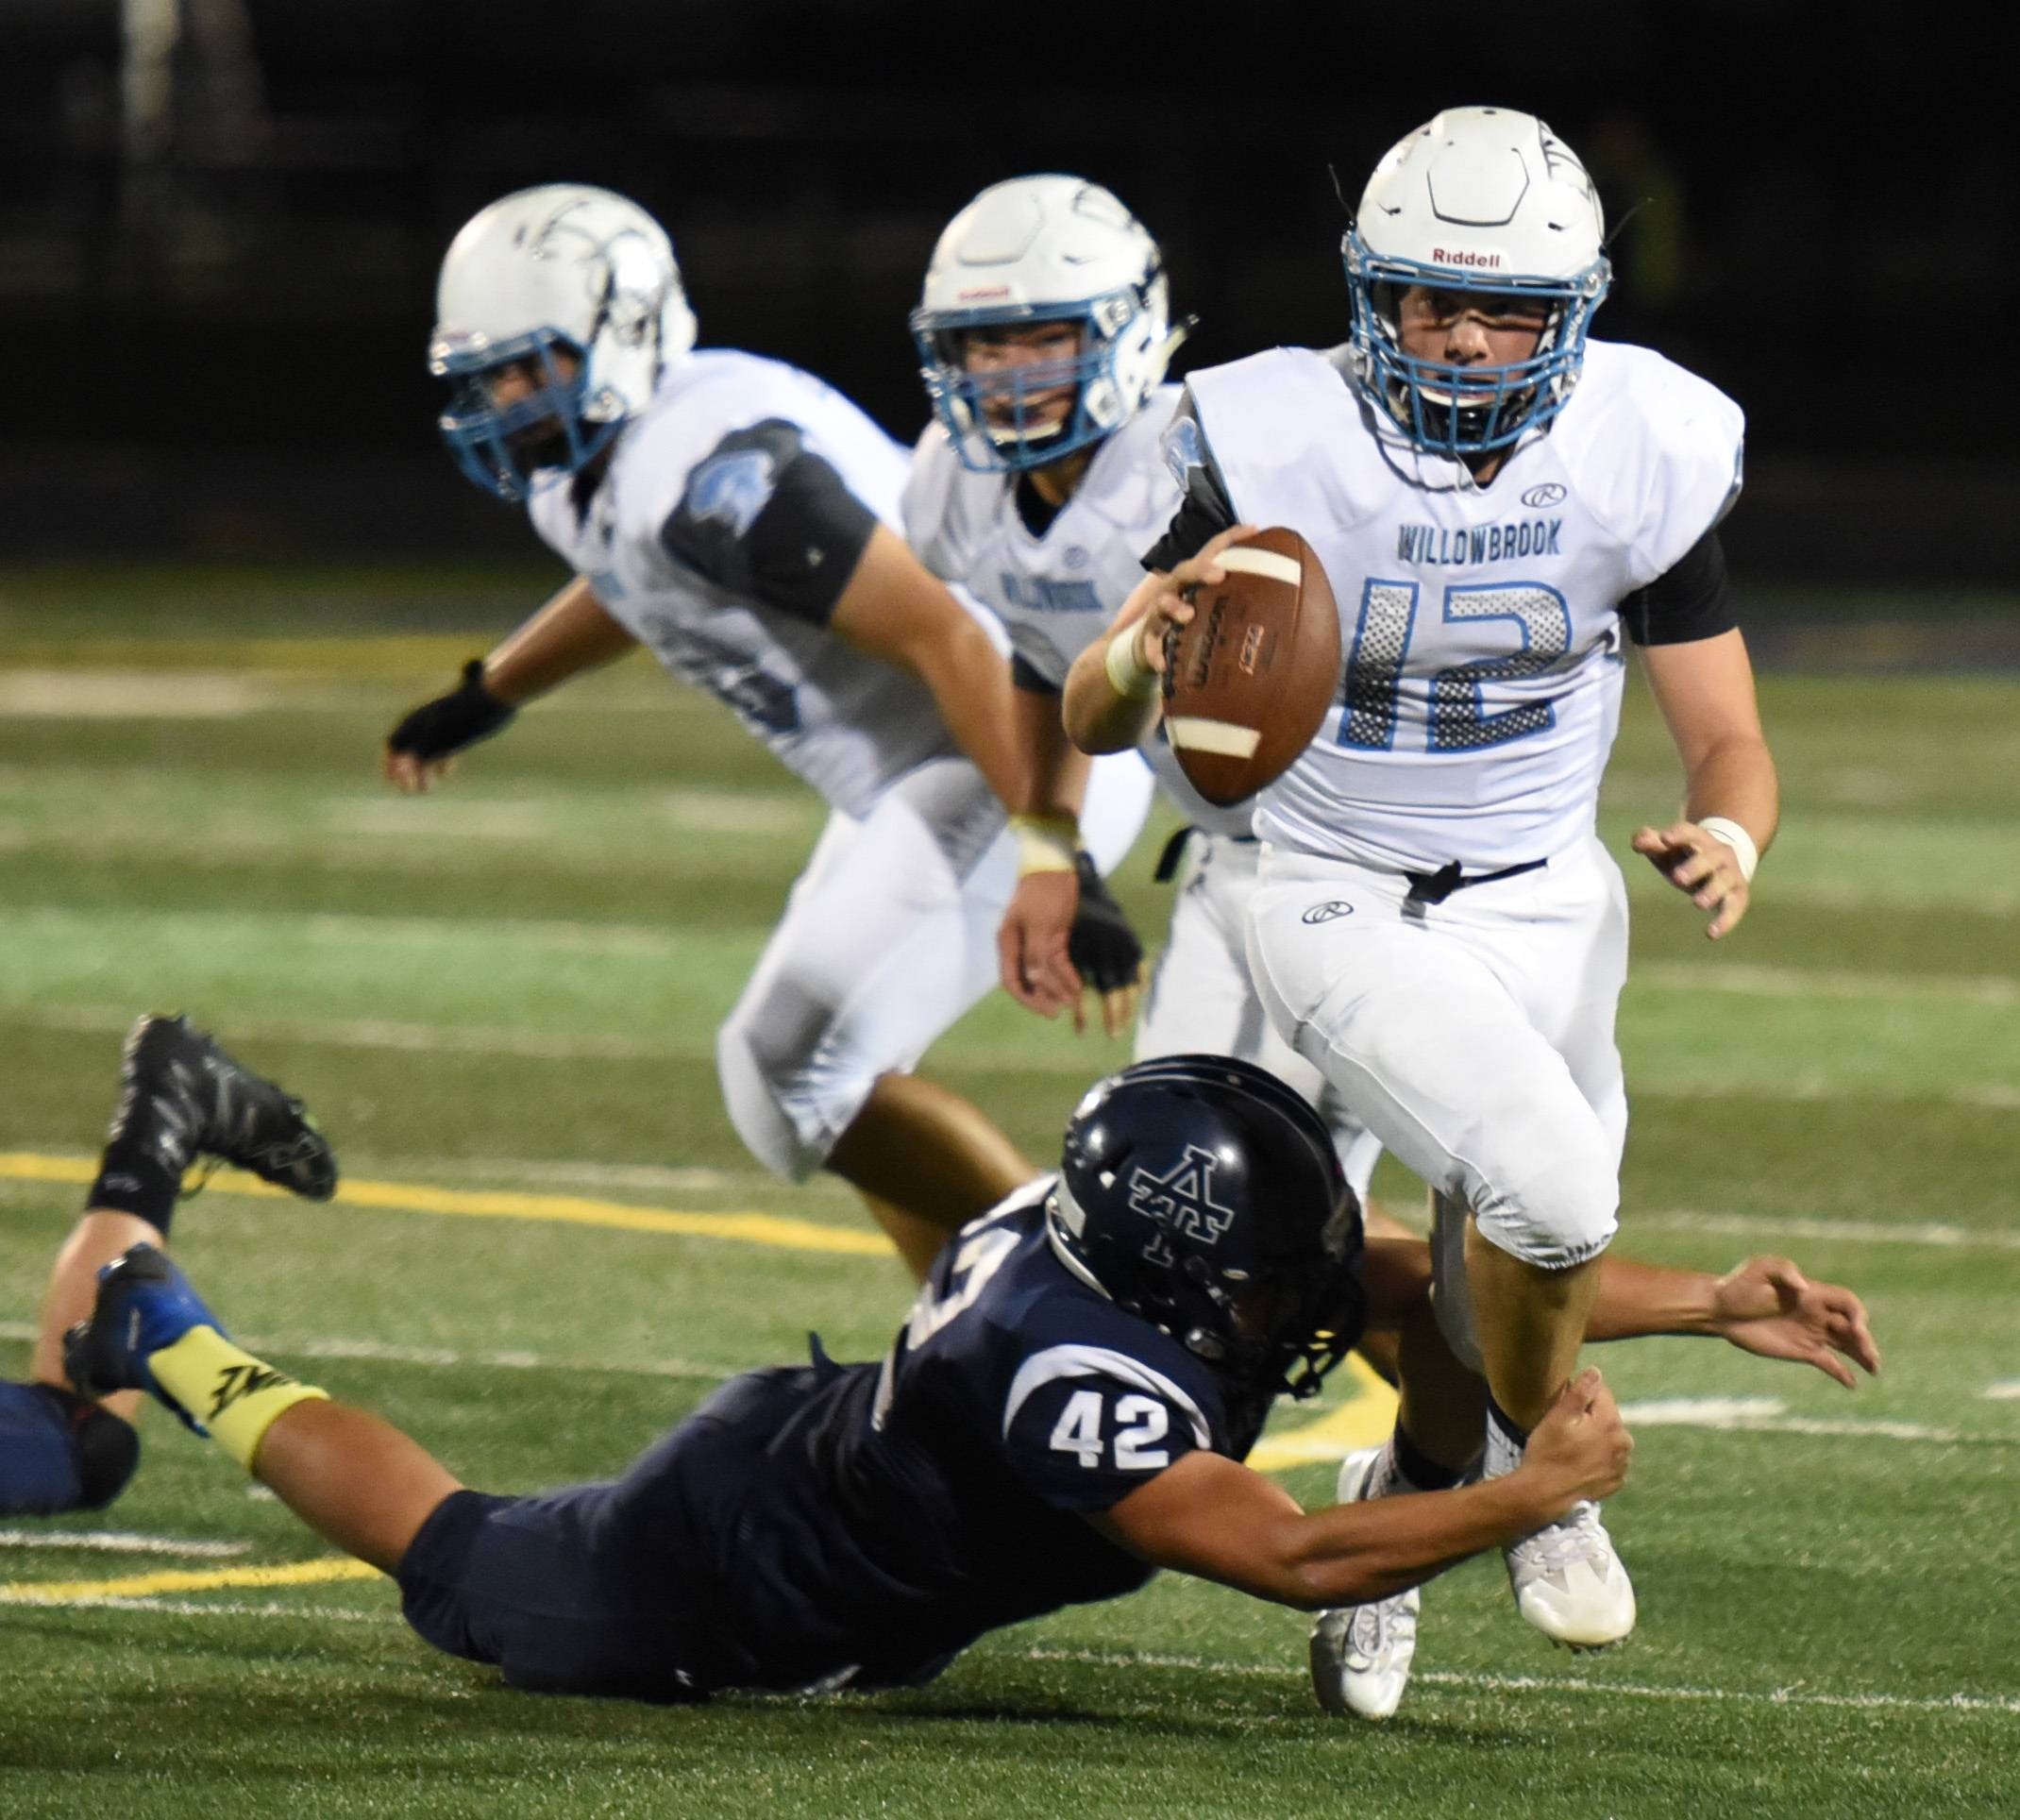 Paul Michna/pmichna@dailyherald.comAddison Trail's Juan Bracamontes  (42) attempts to bring down Willowbrook's  M.J.  Ranieri  (12) during the Willowbrook at Addison Trail football game Friday.